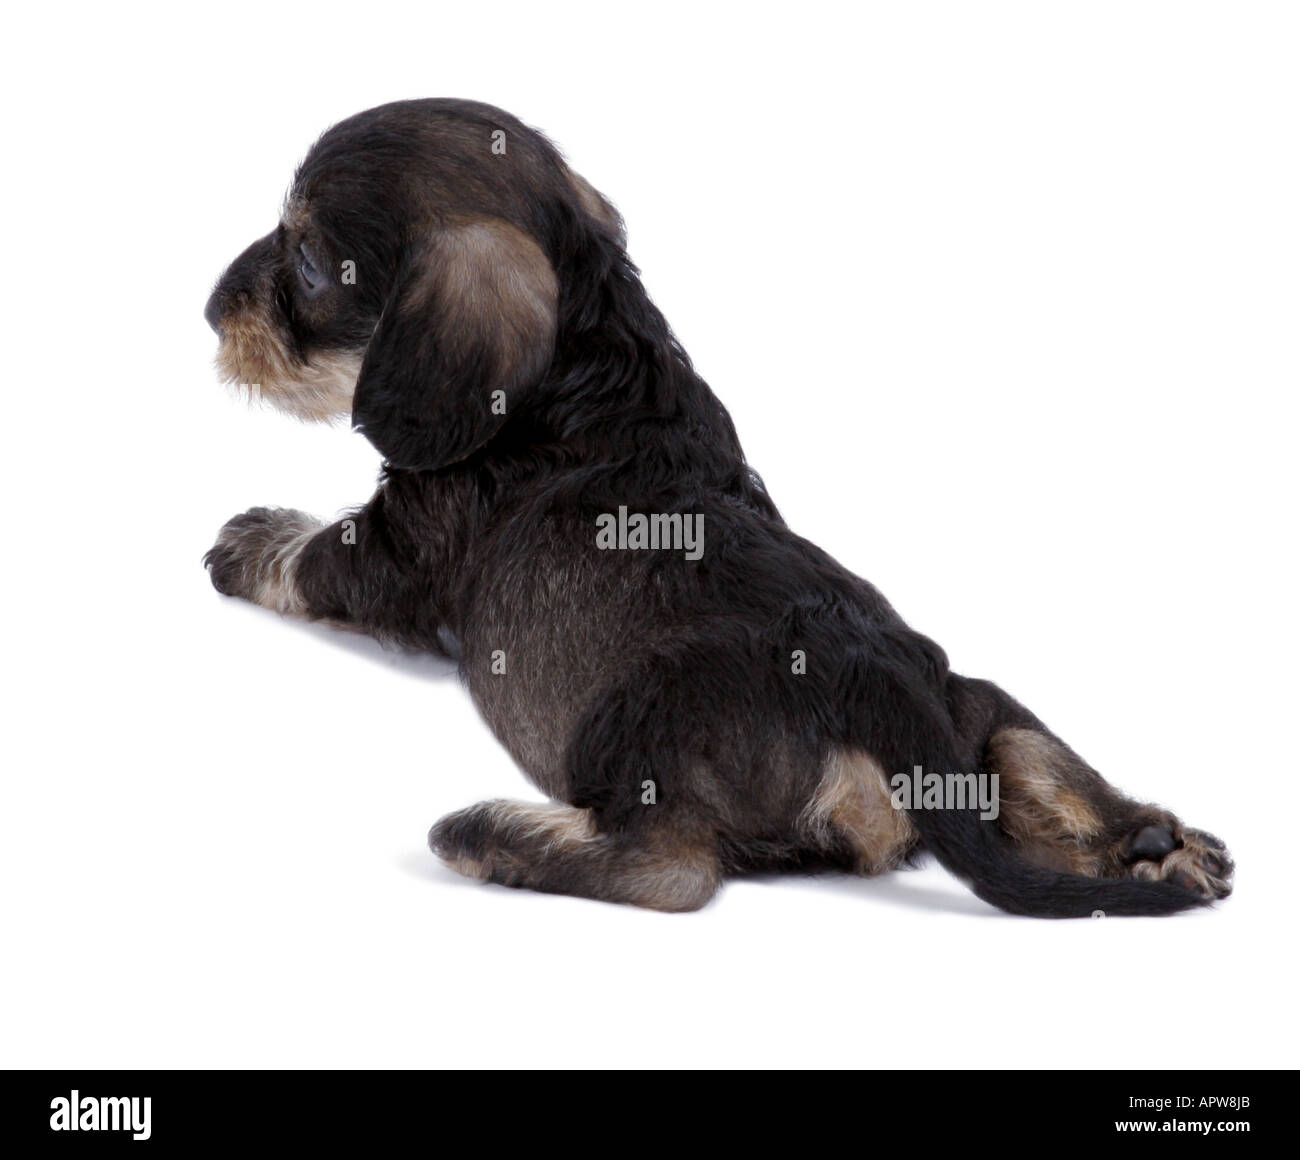 dachshund, sausage dog, domestic dog (Canis lupus f. familiaris), puppy from behind - Stock Image